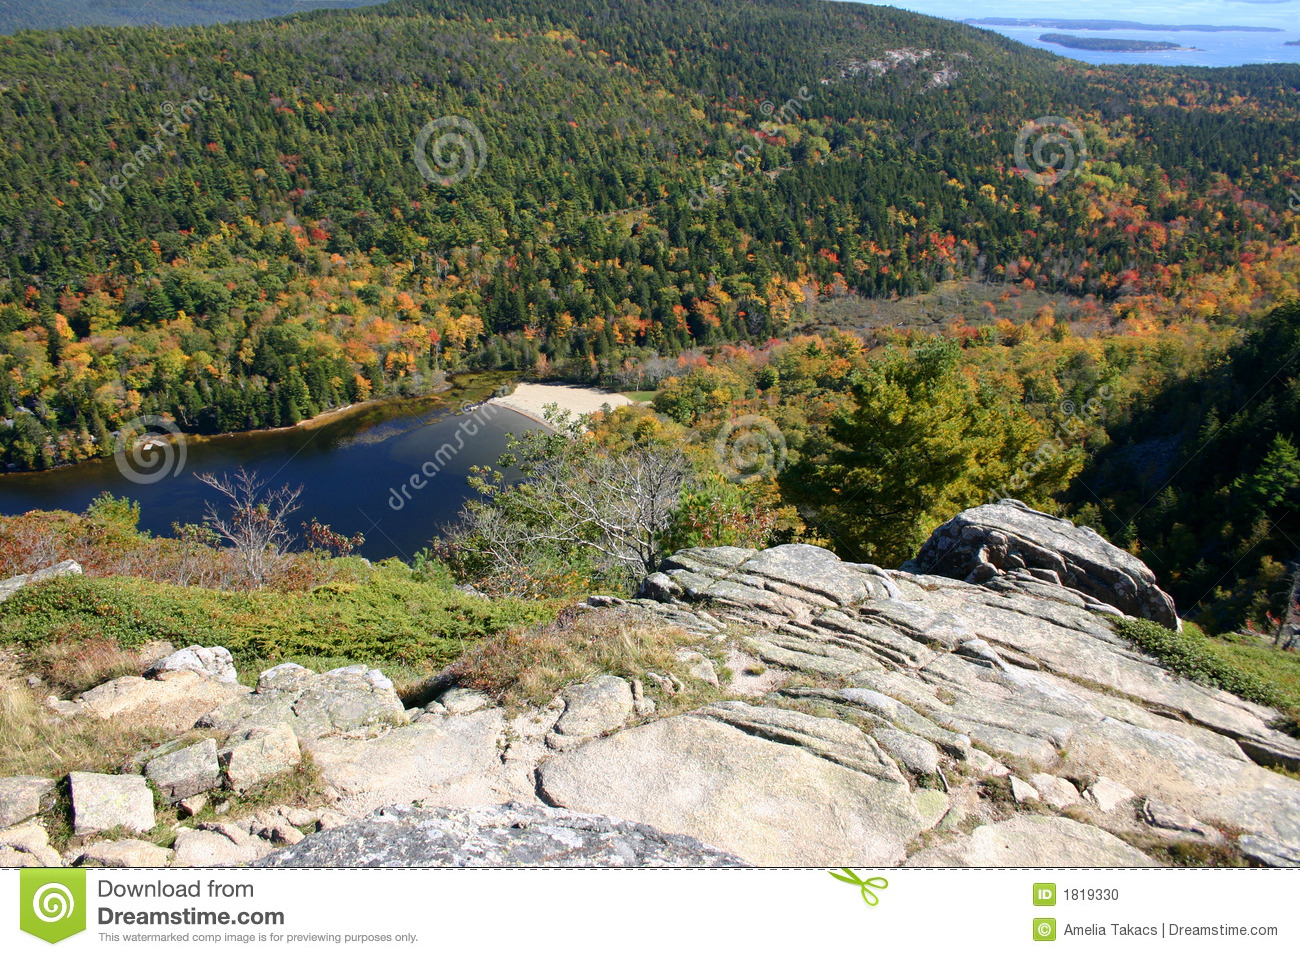 Lago mountain em maine negligencie foto de stock for Consolle lago